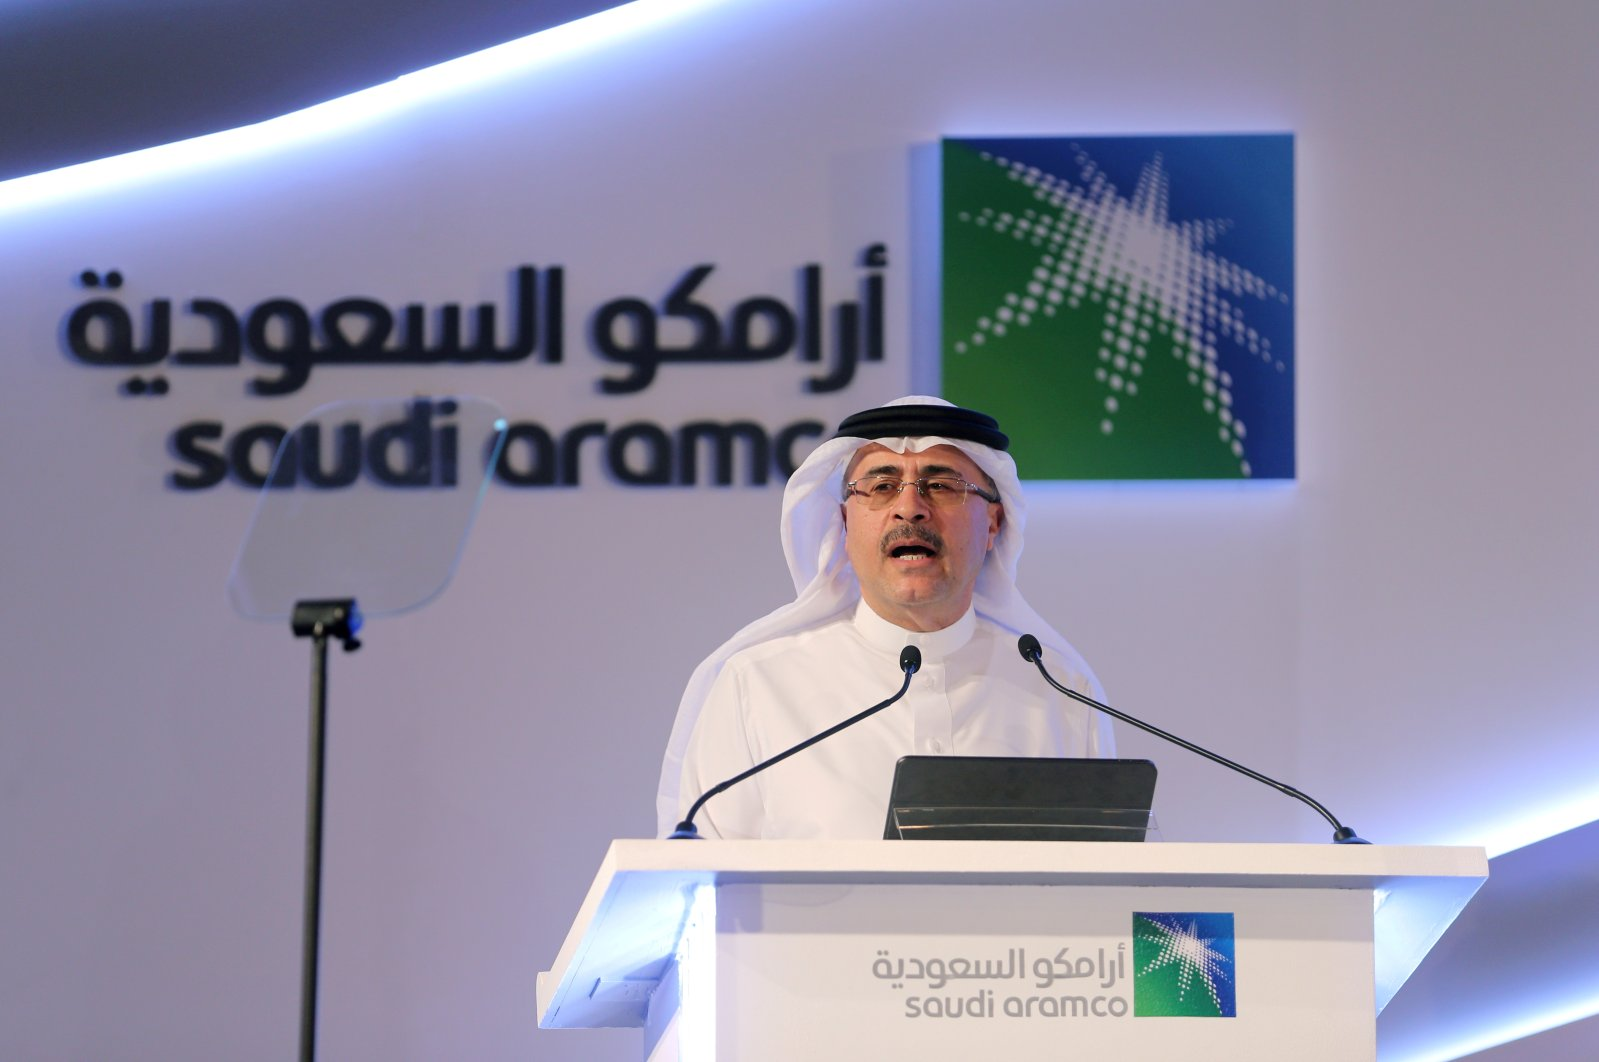 Amin Nasser, president and CEO of Saudi Aramco, speaks during a news conference at the Plaza Conference Center in Dhahran, Saudi Arabia, on Nov. 3, 2019. (Reuters File Photo)